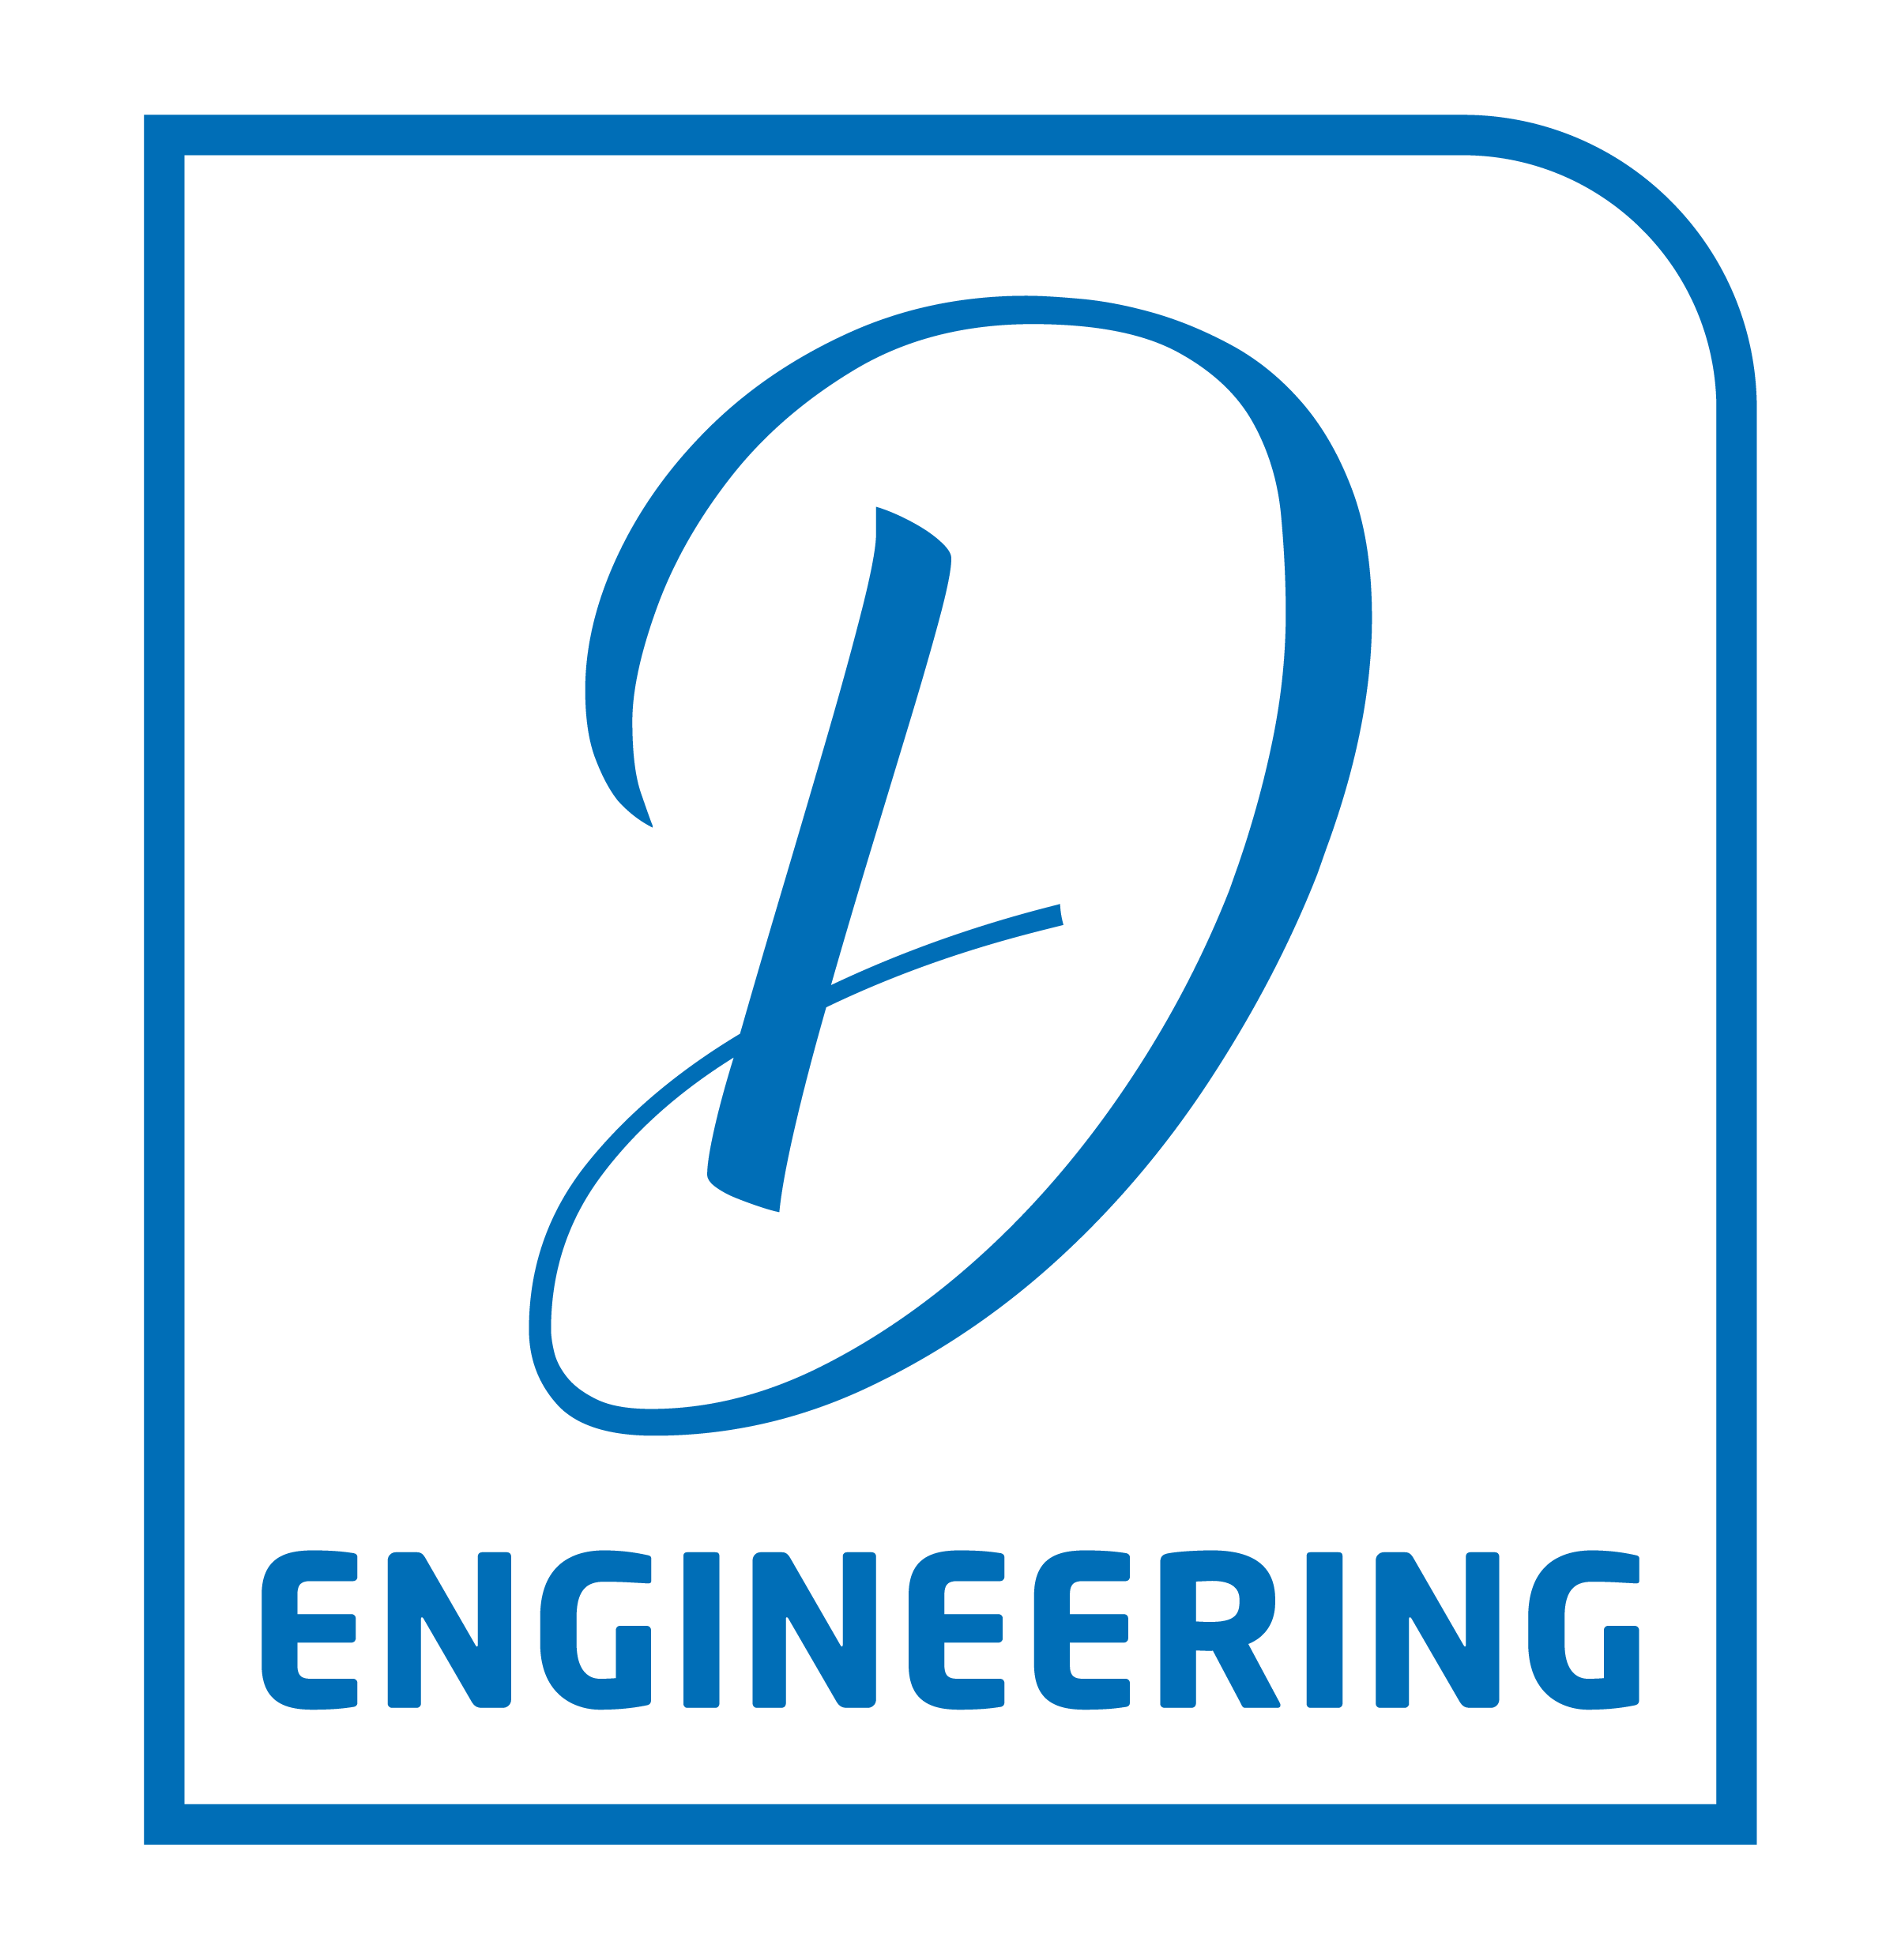 D-Engineering